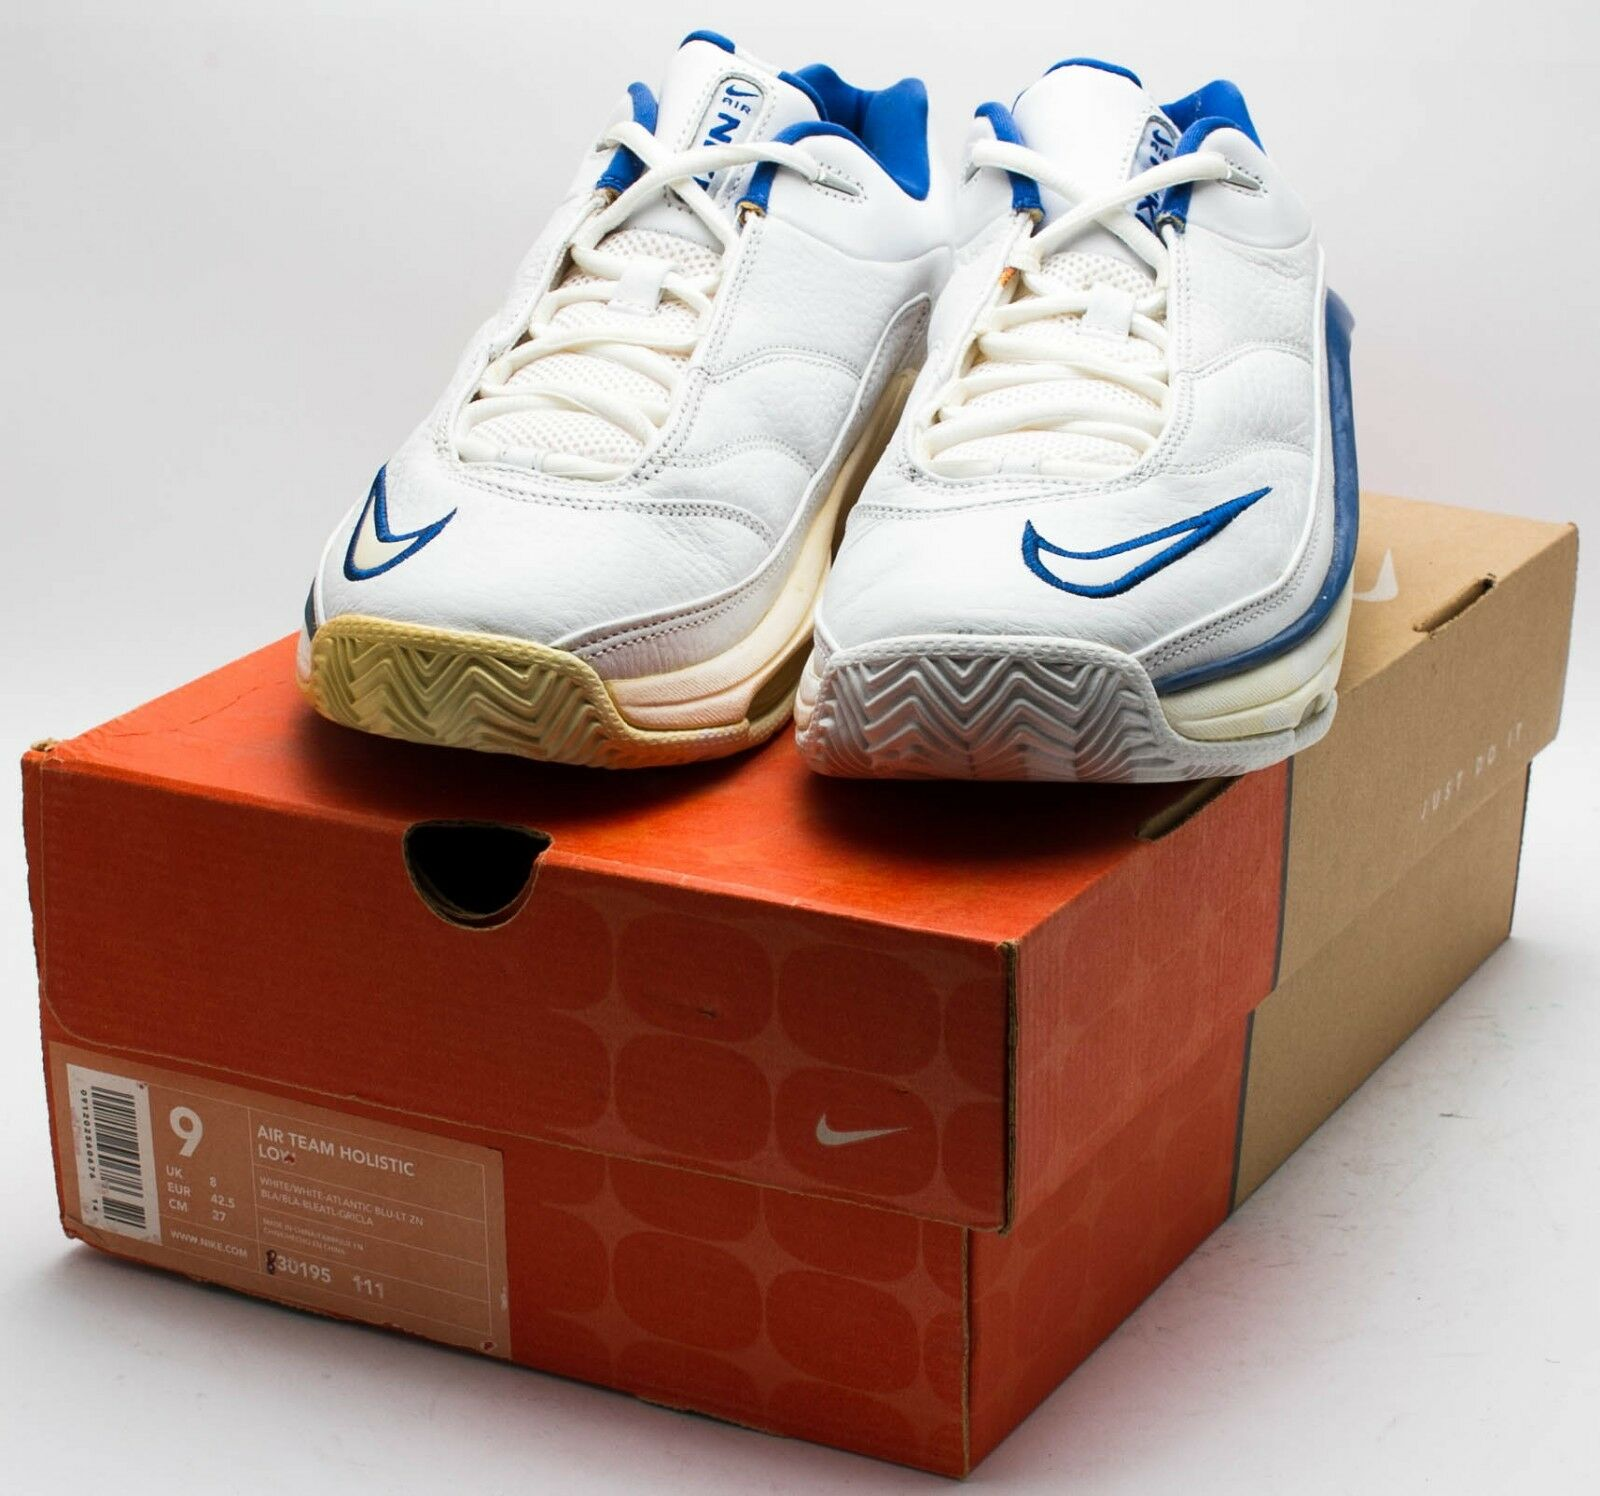 Nike hommes Vintage 2000 Air Team Holistic Low Chaussures 830195-111 blanc sz. 9